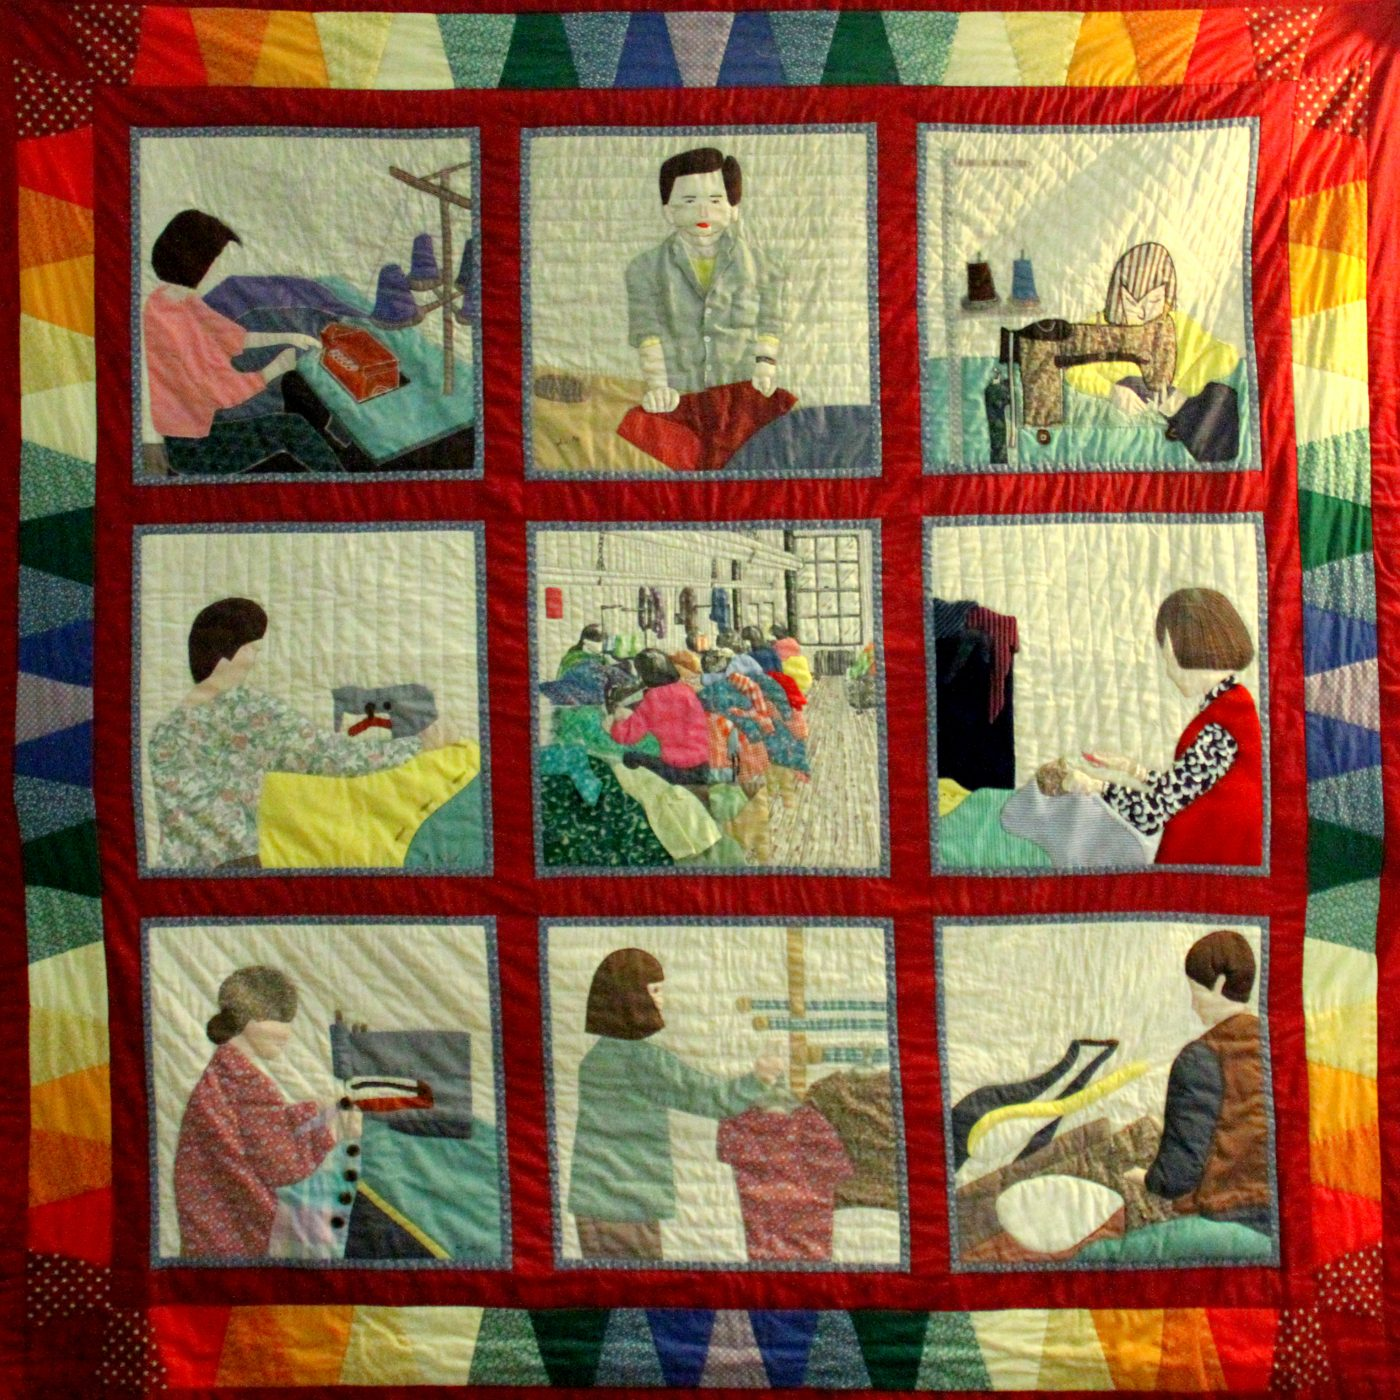 16 August 2019 Posted. Quilt made by garment workers depicting garment work tasks, 1989, Museum of Chinese in America (MOCA) Collection. 由服装工人制作的被子,描绘了服装工作的各项任务分工,1989年,美国华人博物馆(MOCA)馆藏